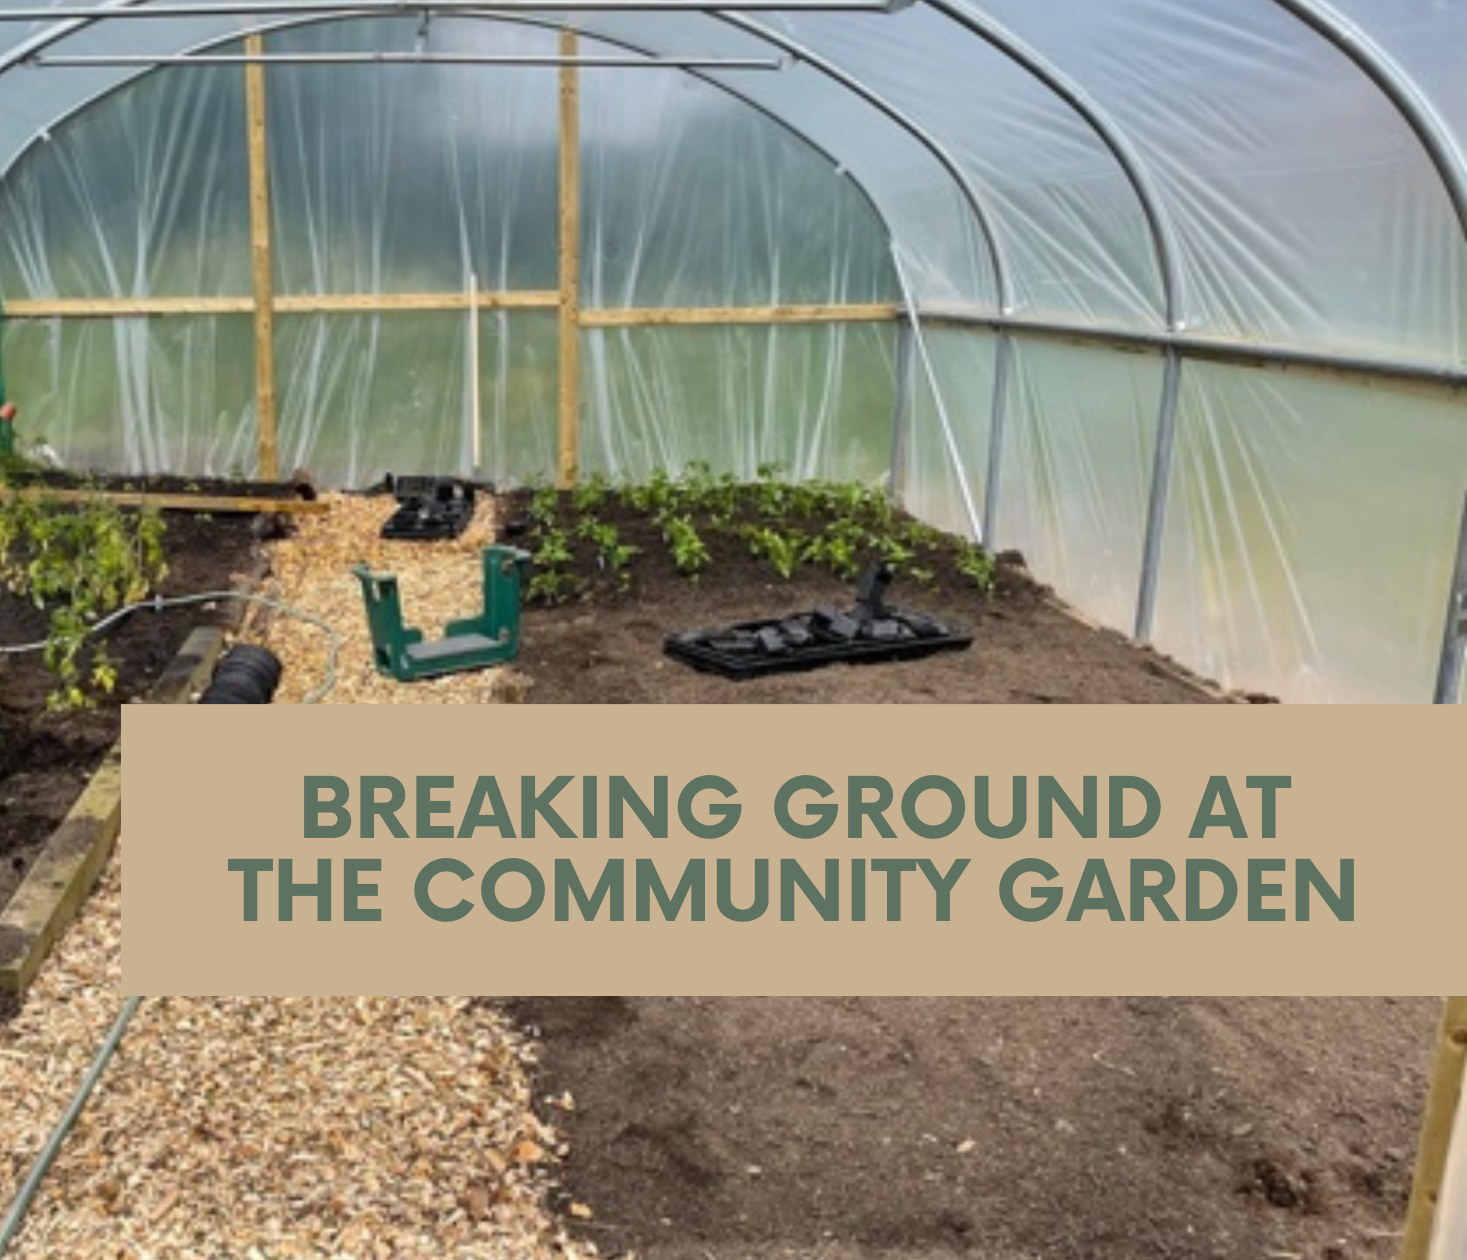 Growing Army is breaking ground at the Community Garden